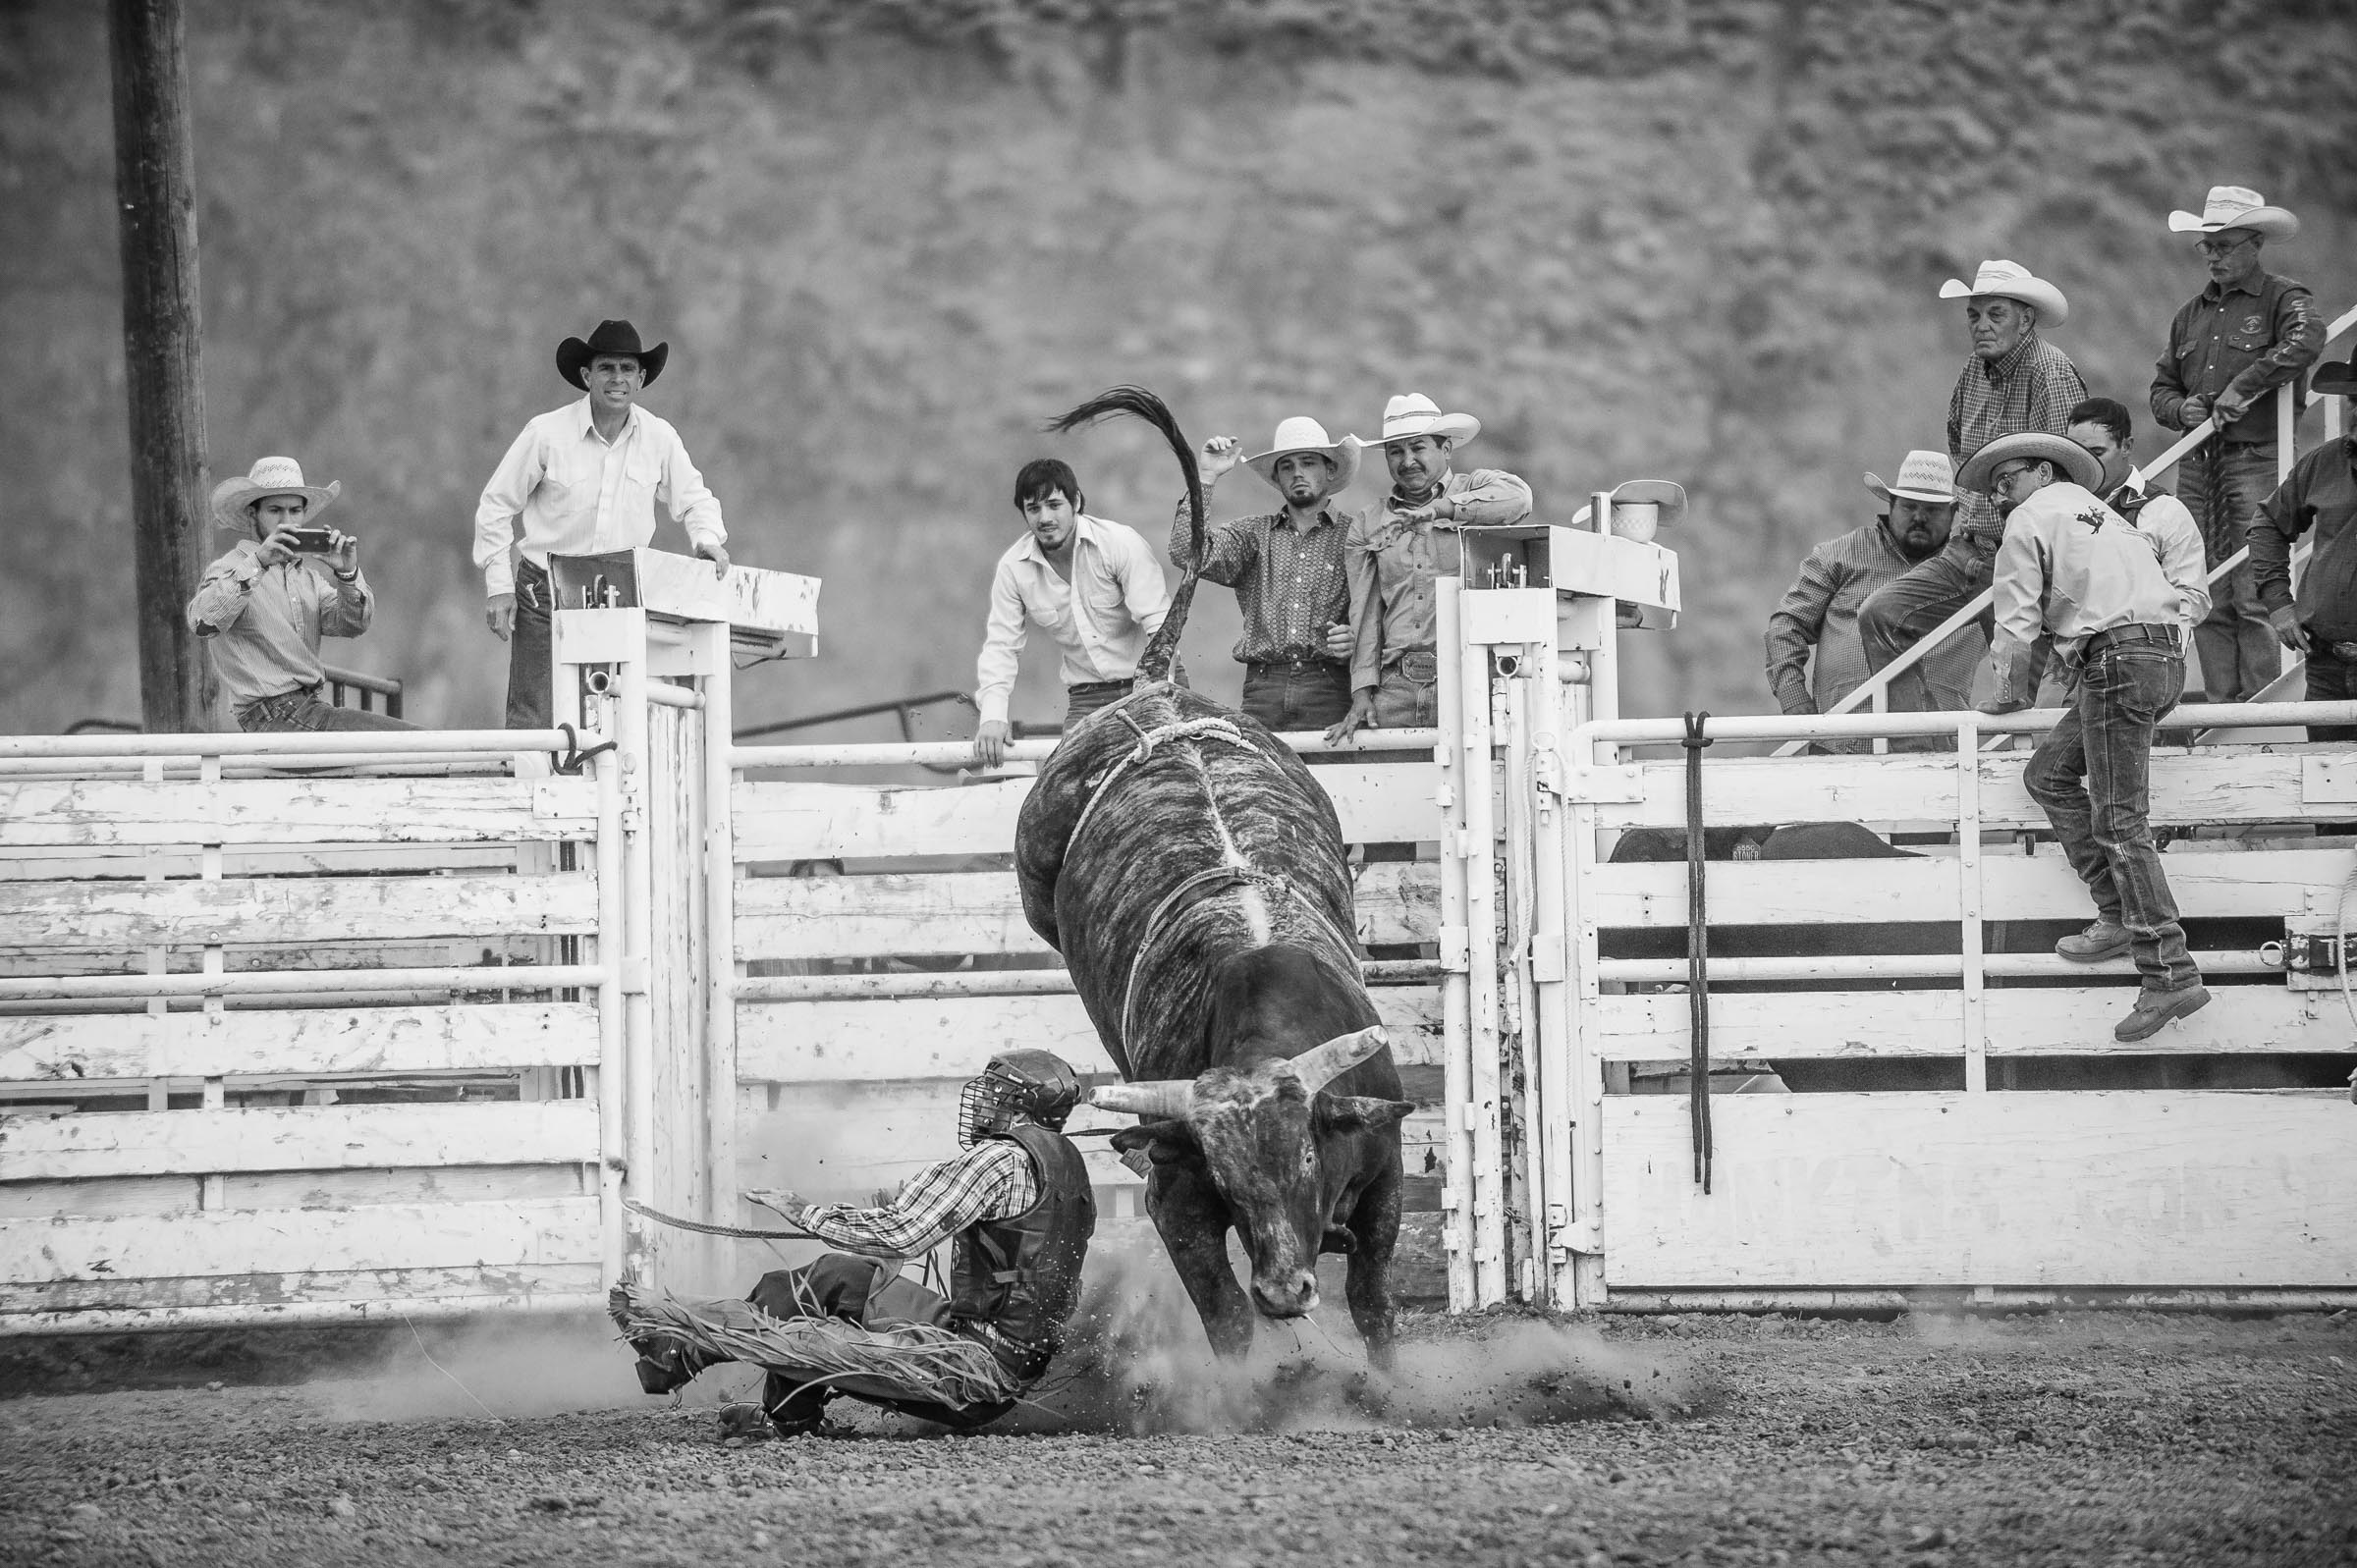 rodeo_whisky-bent_bynum-2618.JPG